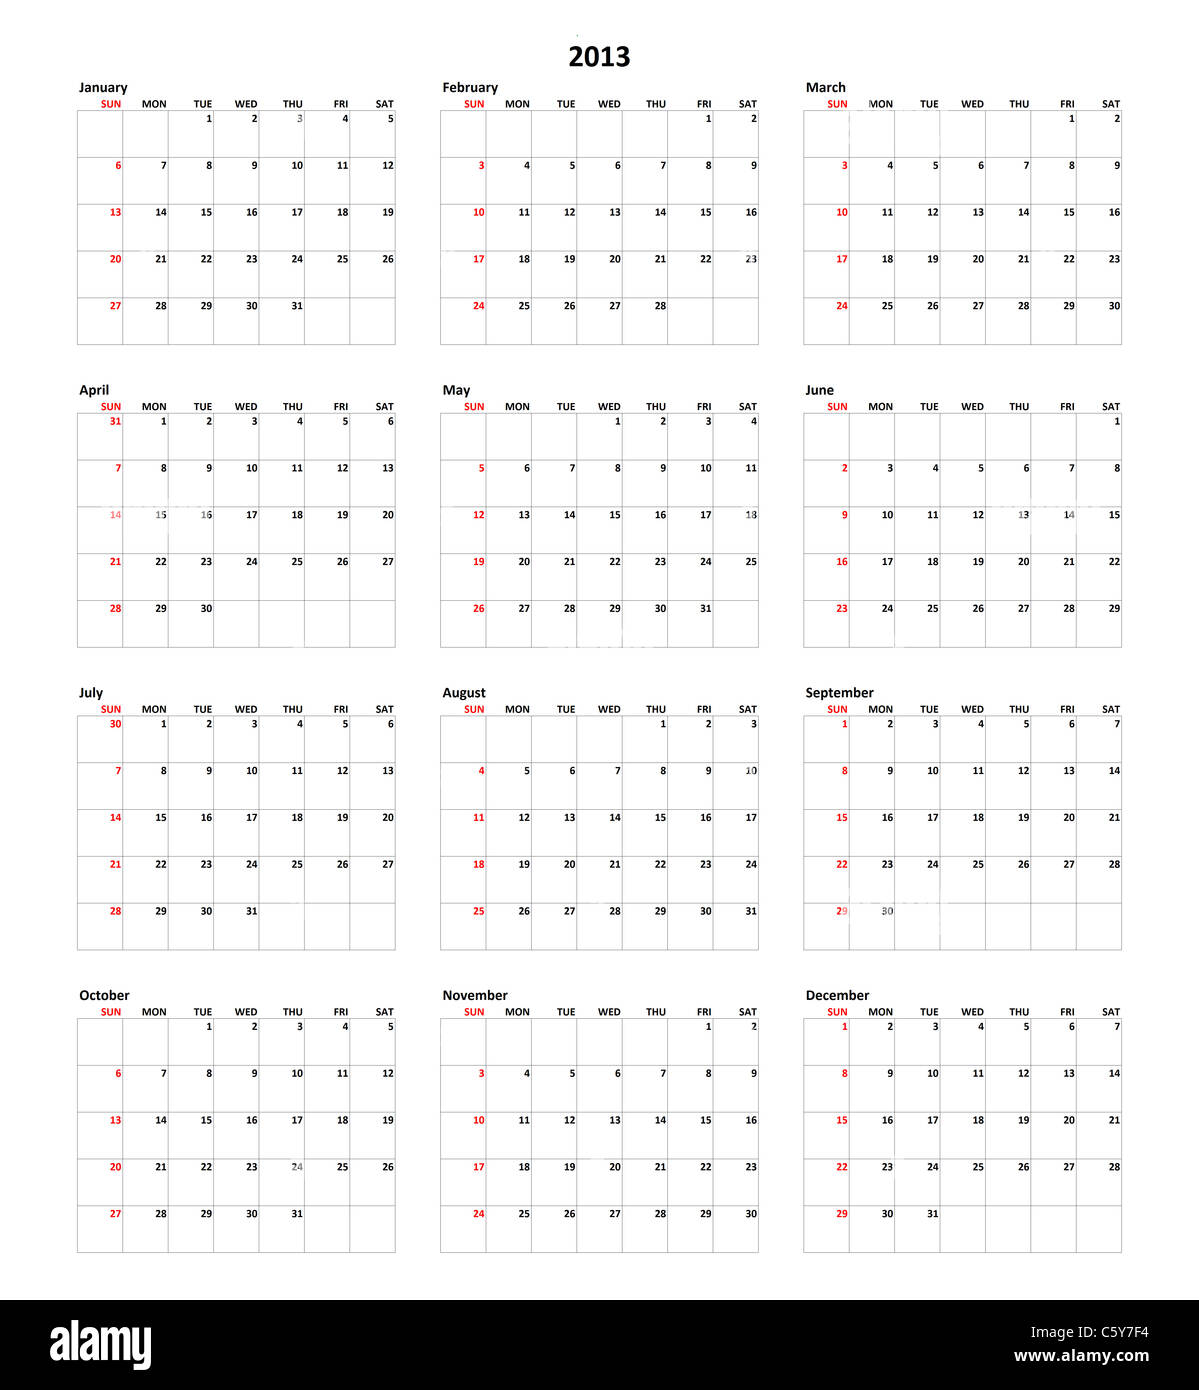 Simple Calendar for year 2013 - Stock Image